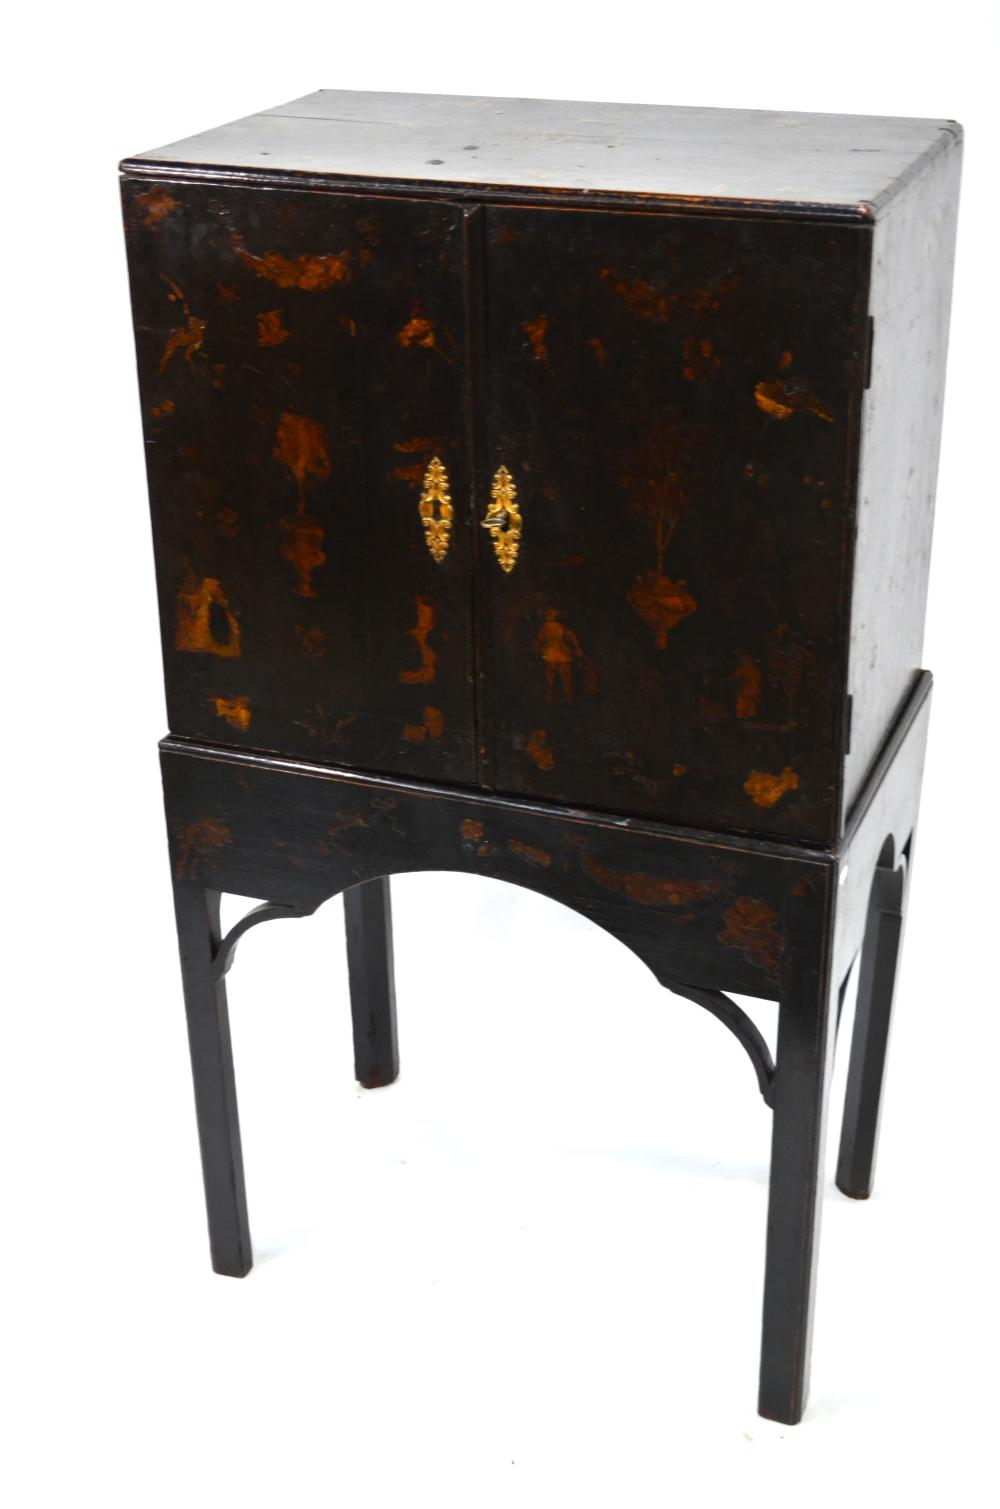 An 18th century black lacquered and decorated cabinet on stand